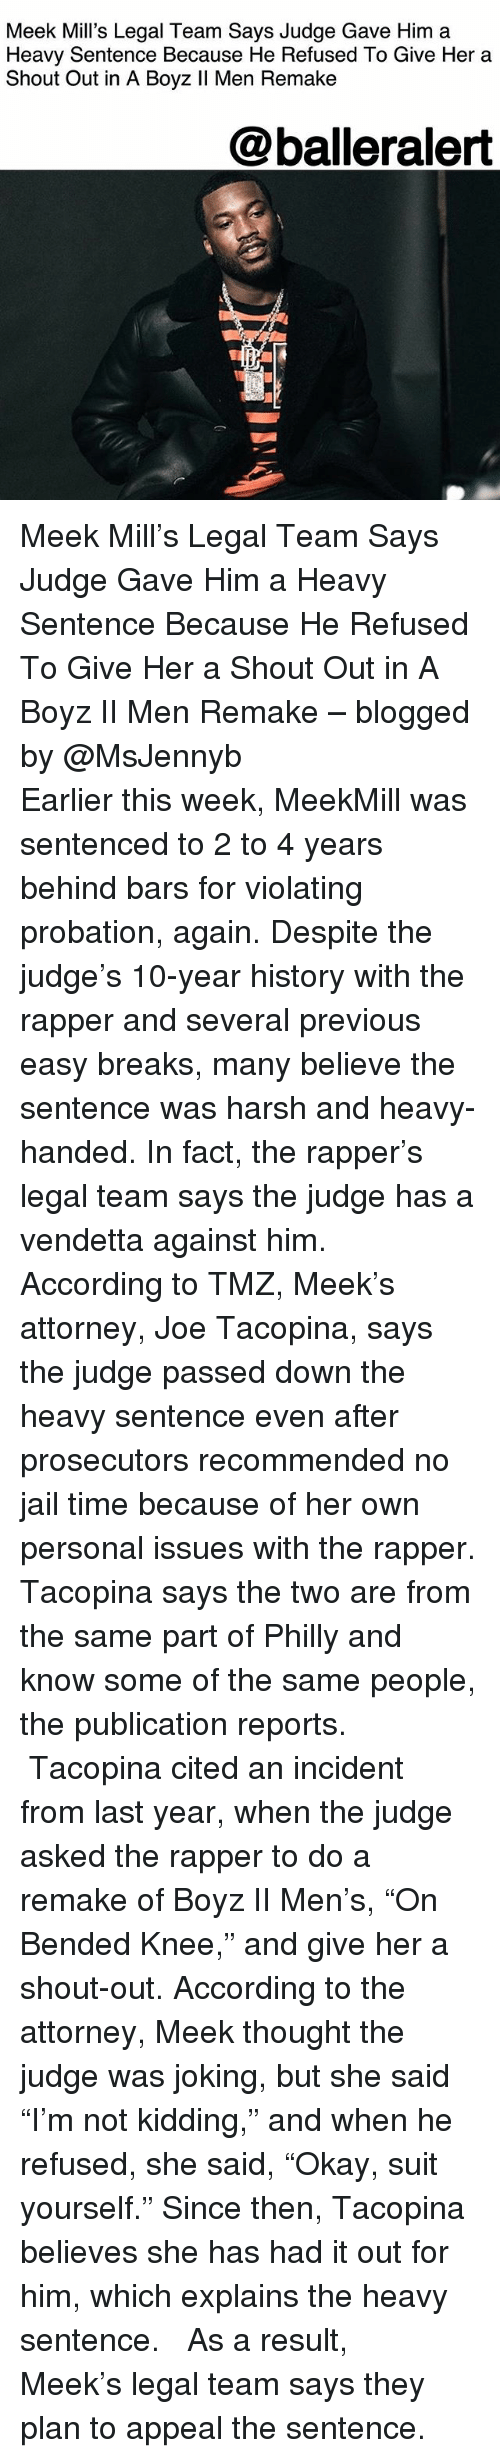 """Jail, Meek Mill, and Memes: Meek Mill's Legal Team Says Judge Gave Him a  Heavy Sentence Because He Refused To Give Her a  Shout Out in A Boyz ll Men Remake  @balleralert Meek Mill's Legal Team Says Judge Gave Him a Heavy Sentence Because He Refused To Give Her a Shout Out in A Boyz II Men Remake – blogged by @MsJennyb ⠀⠀⠀⠀⠀⠀⠀ ⠀⠀⠀⠀⠀⠀⠀ Earlier this week, MeekMill was sentenced to 2 to 4 years behind bars for violating probation, again. Despite the judge's 10-year history with the rapper and several previous easy breaks, many believe the sentence was harsh and heavy-handed. In fact, the rapper's legal team says the judge has a vendetta against him. ⠀⠀⠀⠀⠀⠀⠀ ⠀⠀⠀⠀⠀⠀⠀ According to TMZ, Meek's attorney, Joe Tacopina, says the judge passed down the heavy sentence even after prosecutors recommended no jail time because of her own personal issues with the rapper. Tacopina says the two are from the same part of Philly and know some of the same people, the publication reports. ⠀⠀⠀⠀⠀⠀⠀ ⠀⠀⠀⠀⠀⠀⠀ Tacopina cited an incident from last year, when the judge asked the rapper to do a remake of Boyz II Men's, """"On Bended Knee,"""" and give her a shout-out. According to the attorney, Meek thought the judge was joking, but she said """"I'm not kidding,"""" and when he refused, she said, """"Okay, suit yourself."""" Since then, Tacopina believes she has had it out for him, which explains the heavy sentence. ⠀⠀⠀⠀⠀⠀⠀ ⠀⠀⠀⠀⠀⠀⠀ As a result, Meek's legal team says they plan to appeal the sentence."""